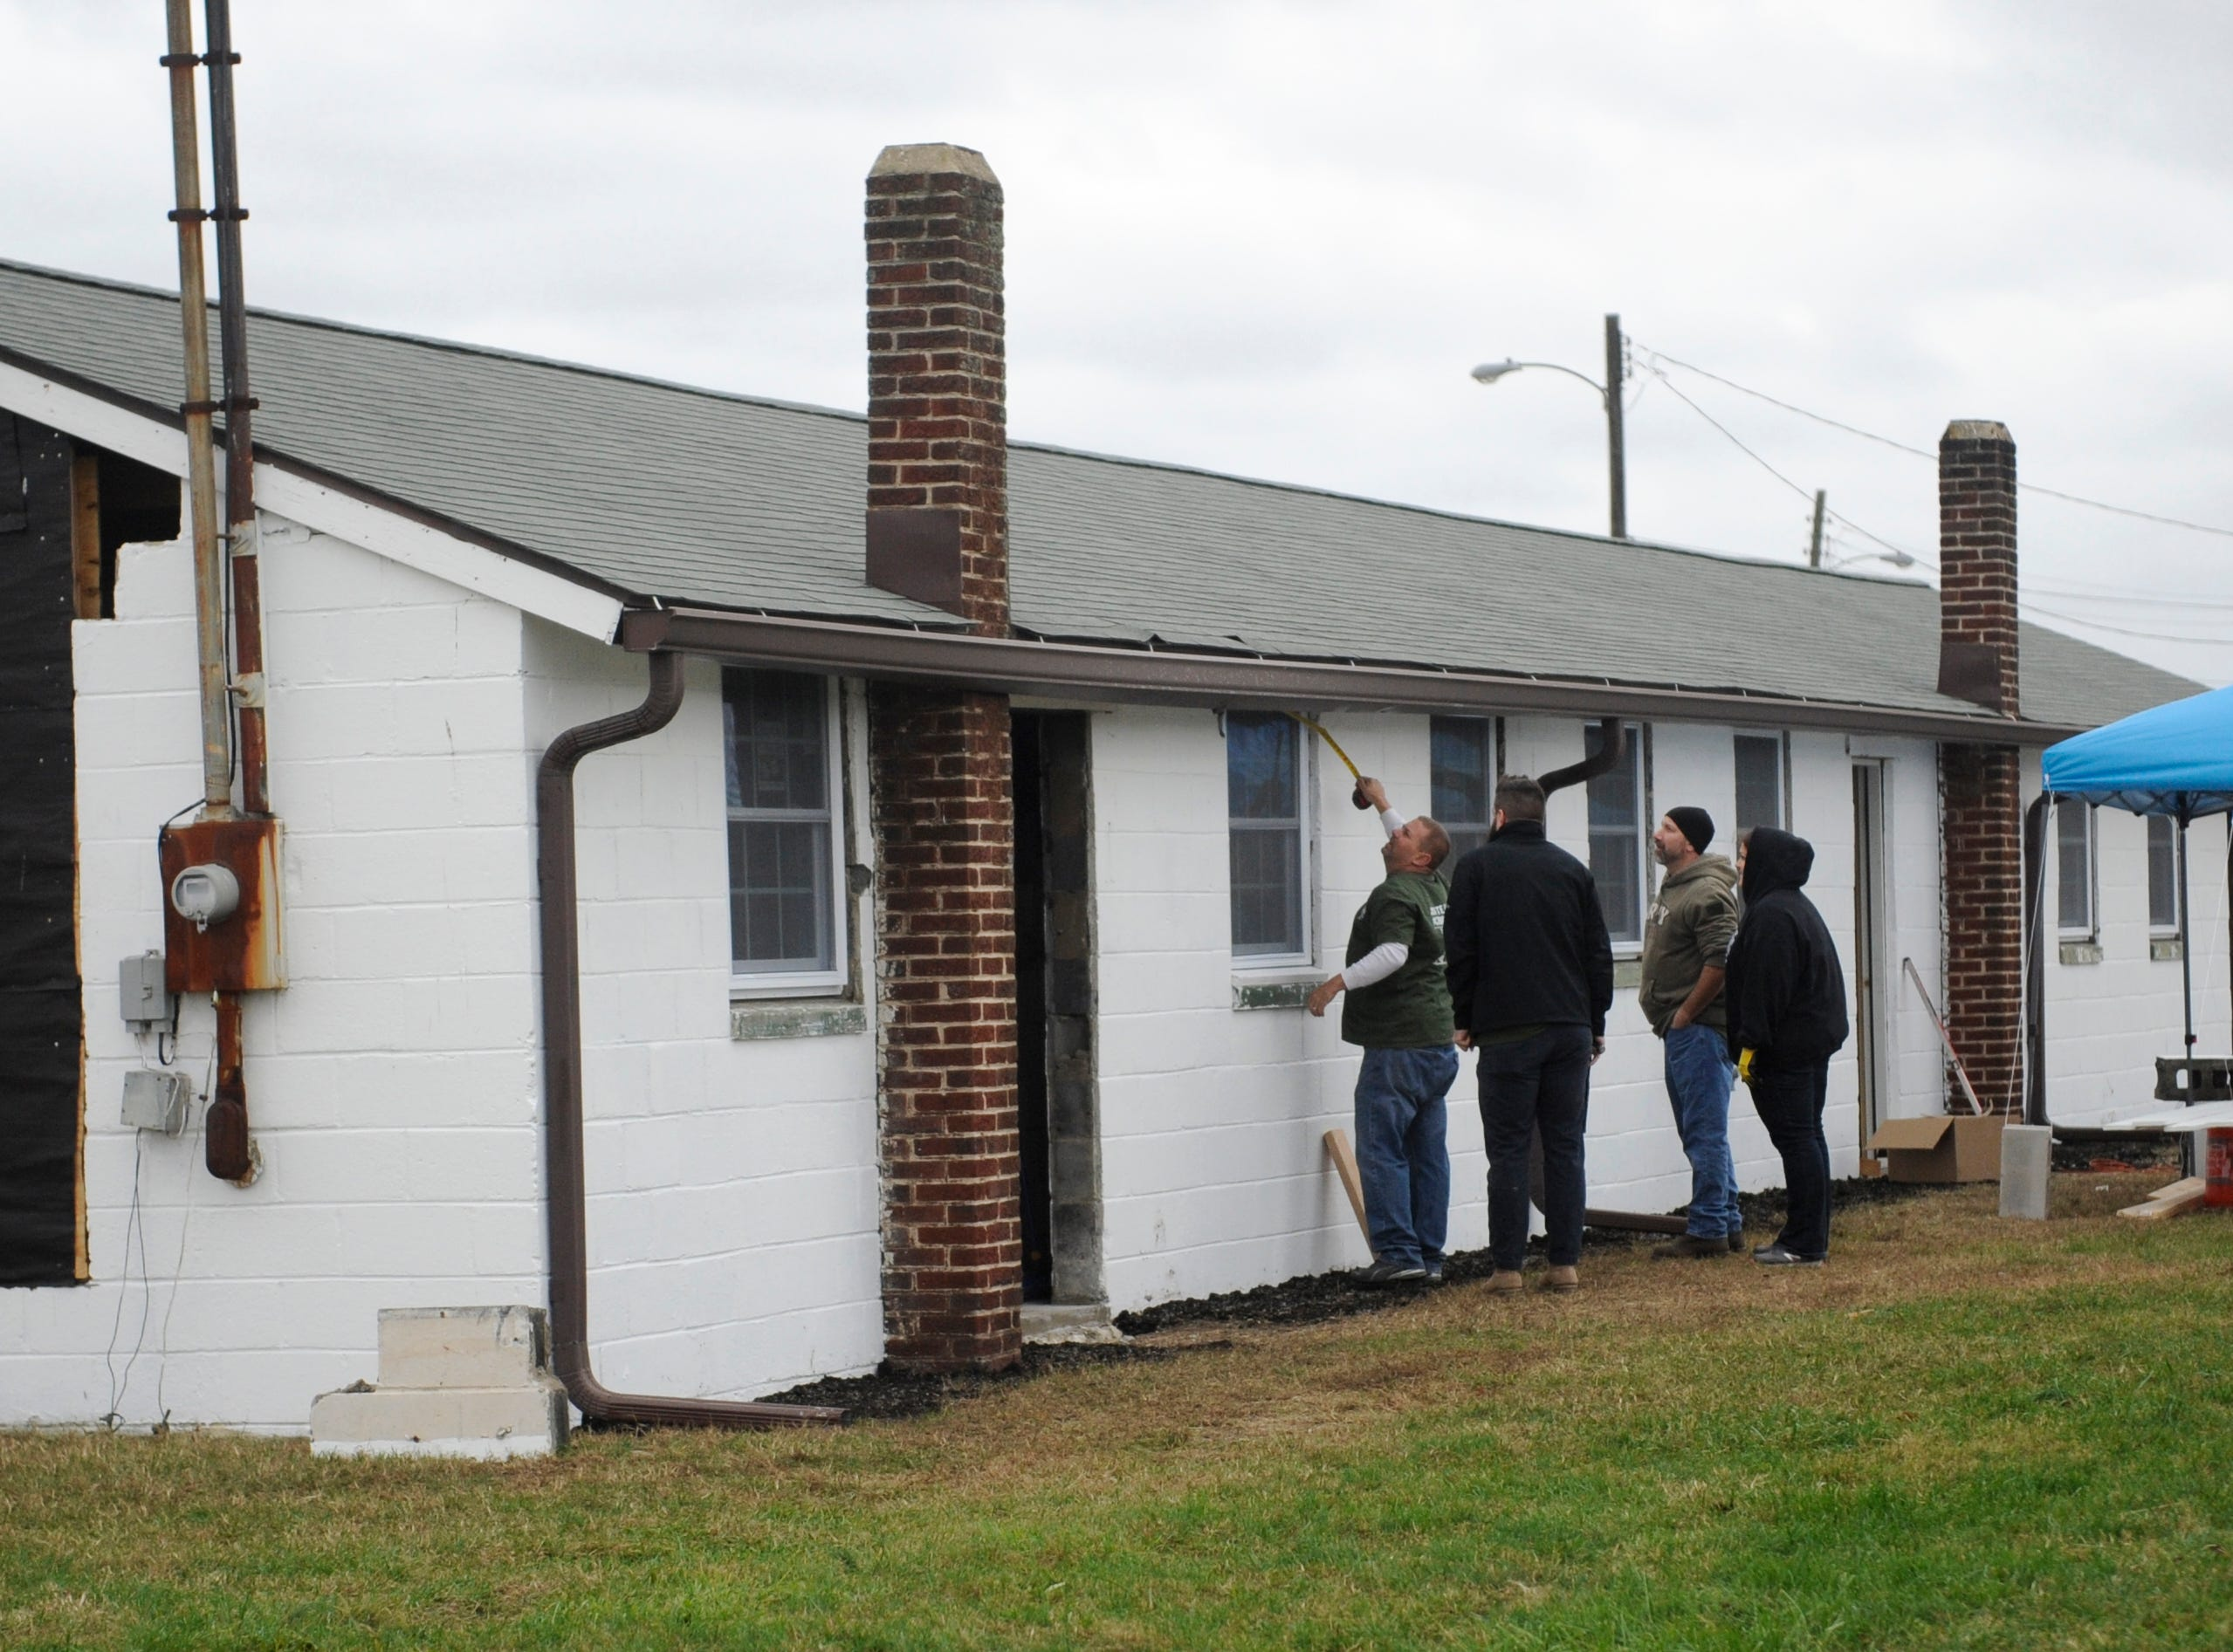 Members of the Home Depot team help renovate a building that will be part of the Millville Army Airfield Museum on Friday, November 9, 2018.